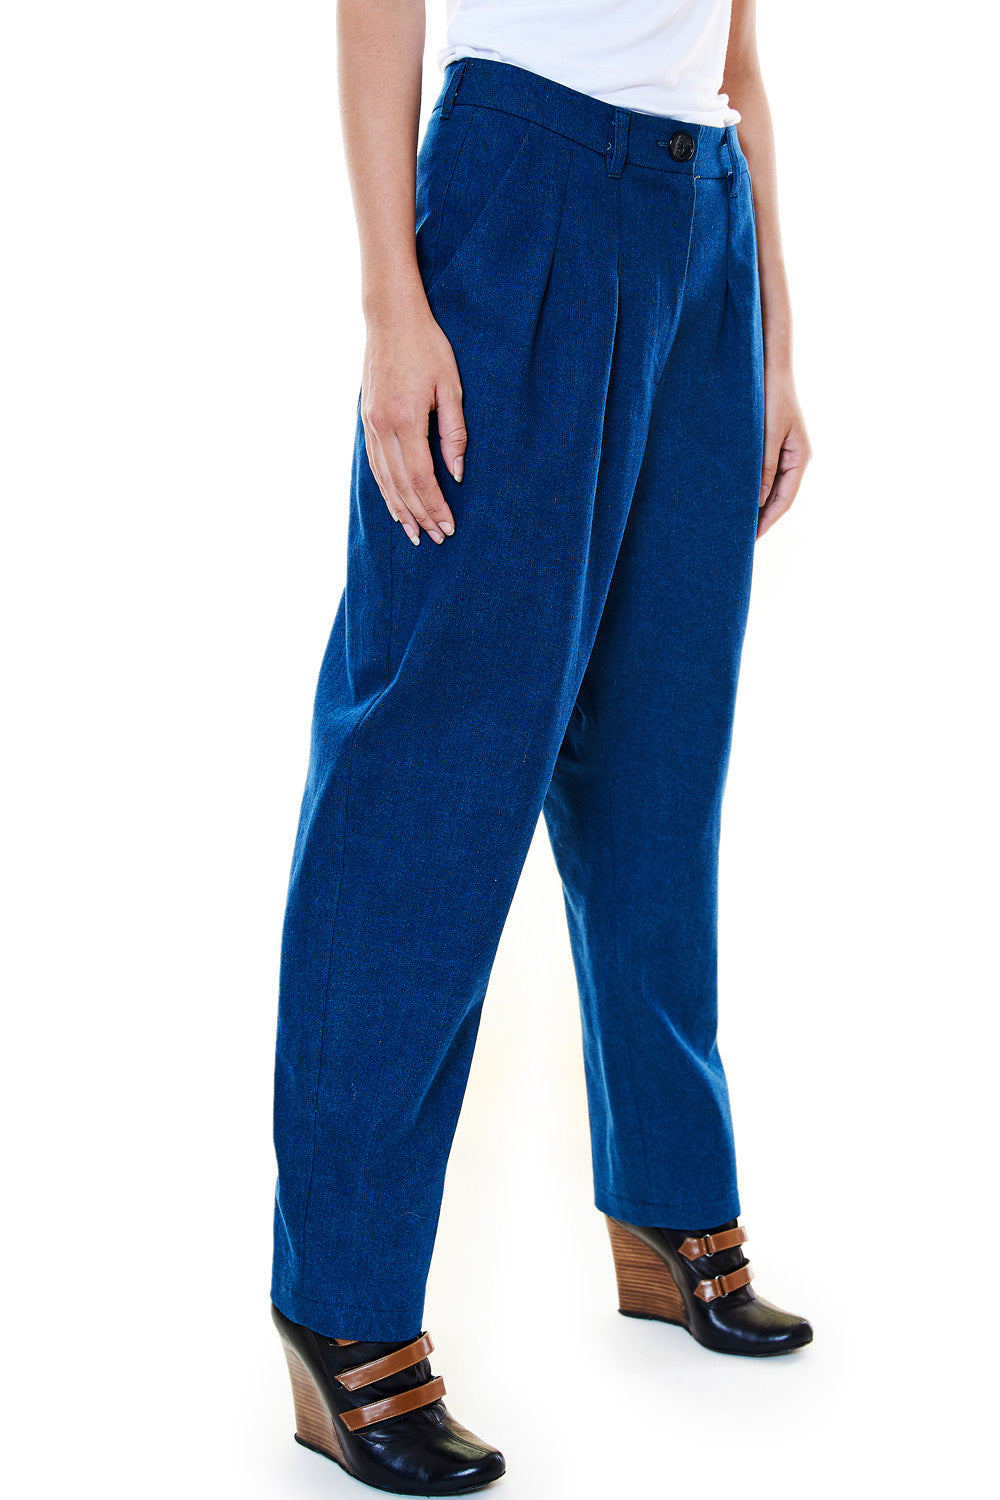 Blue Crepe Trouser - casacomostyle